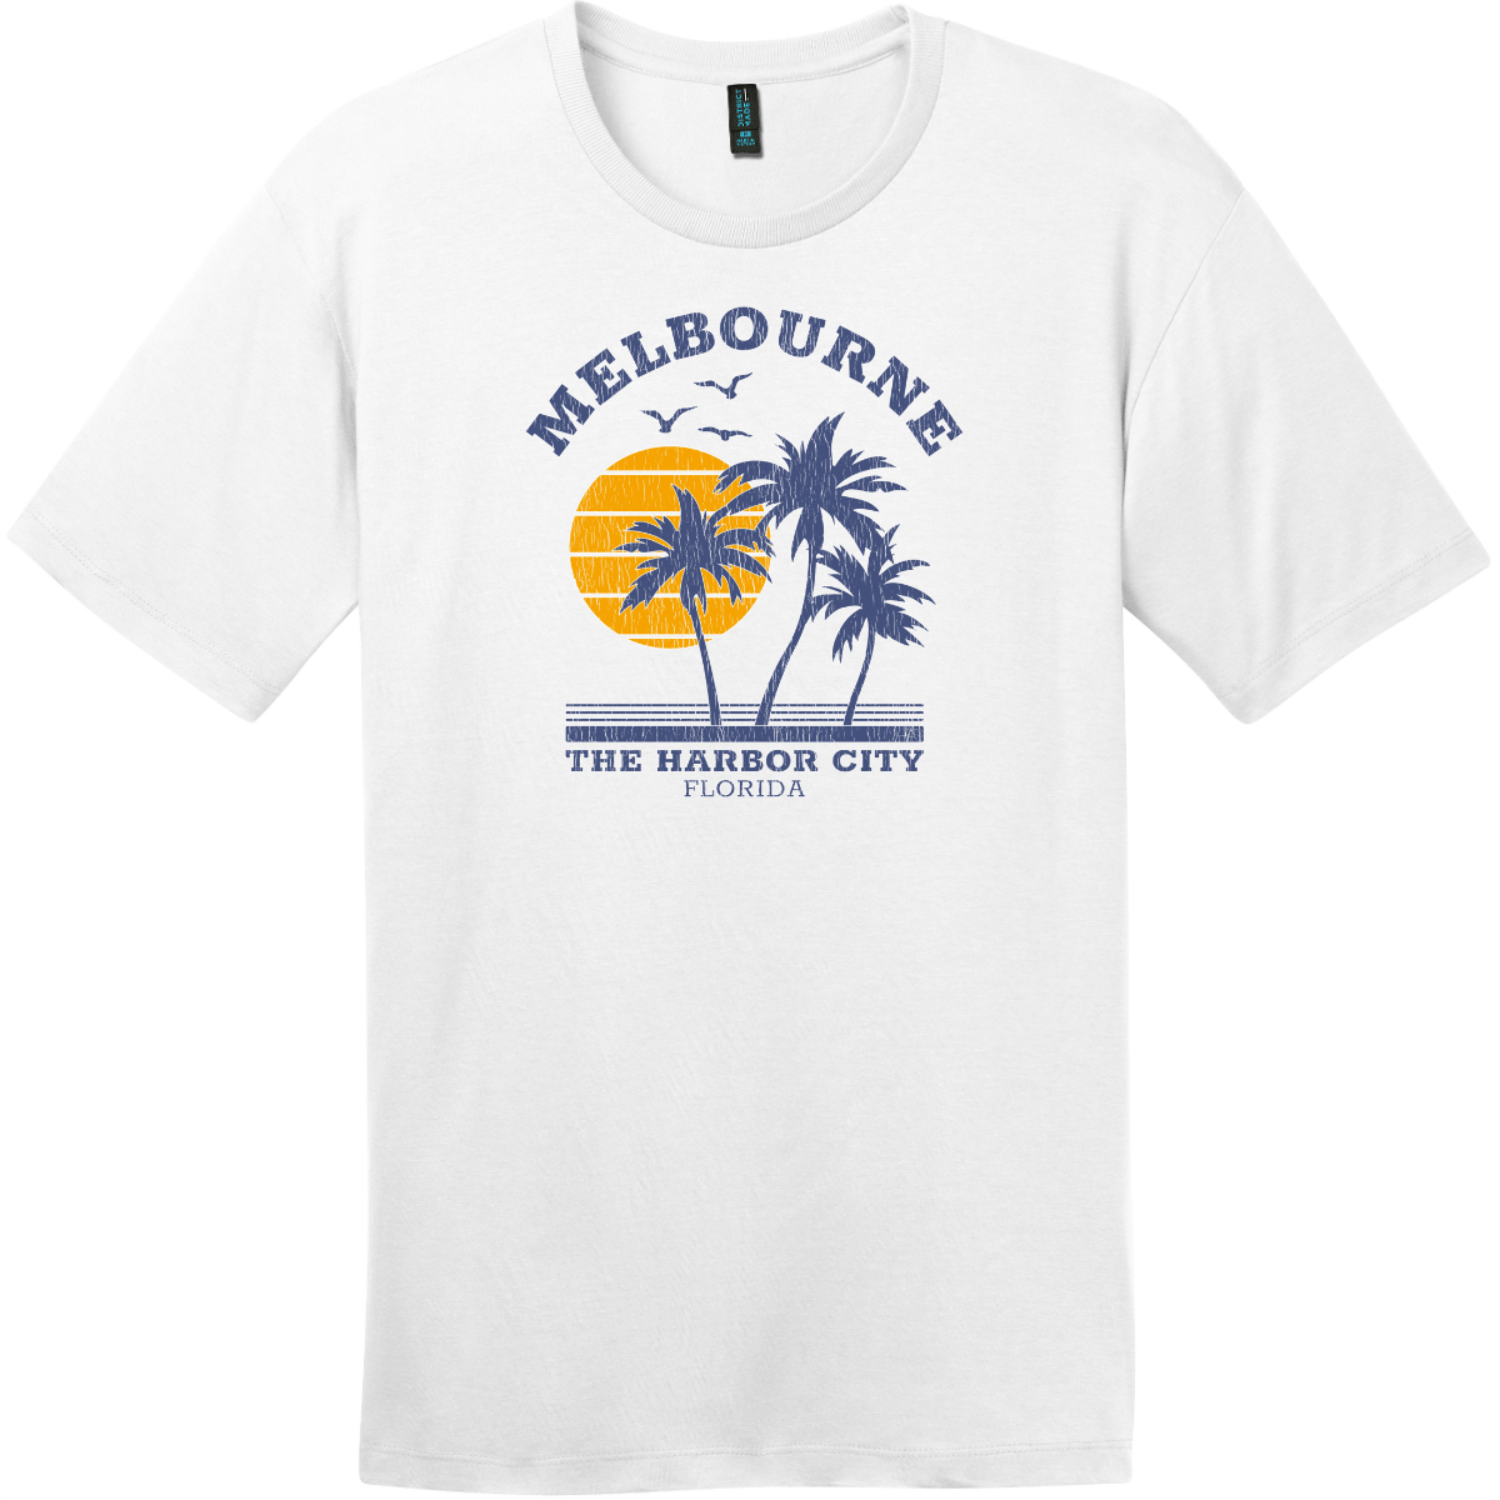 Melbourne Florida The Harbor City Vintage T-Shirt Bright White District Perfect Weight Tee DT104